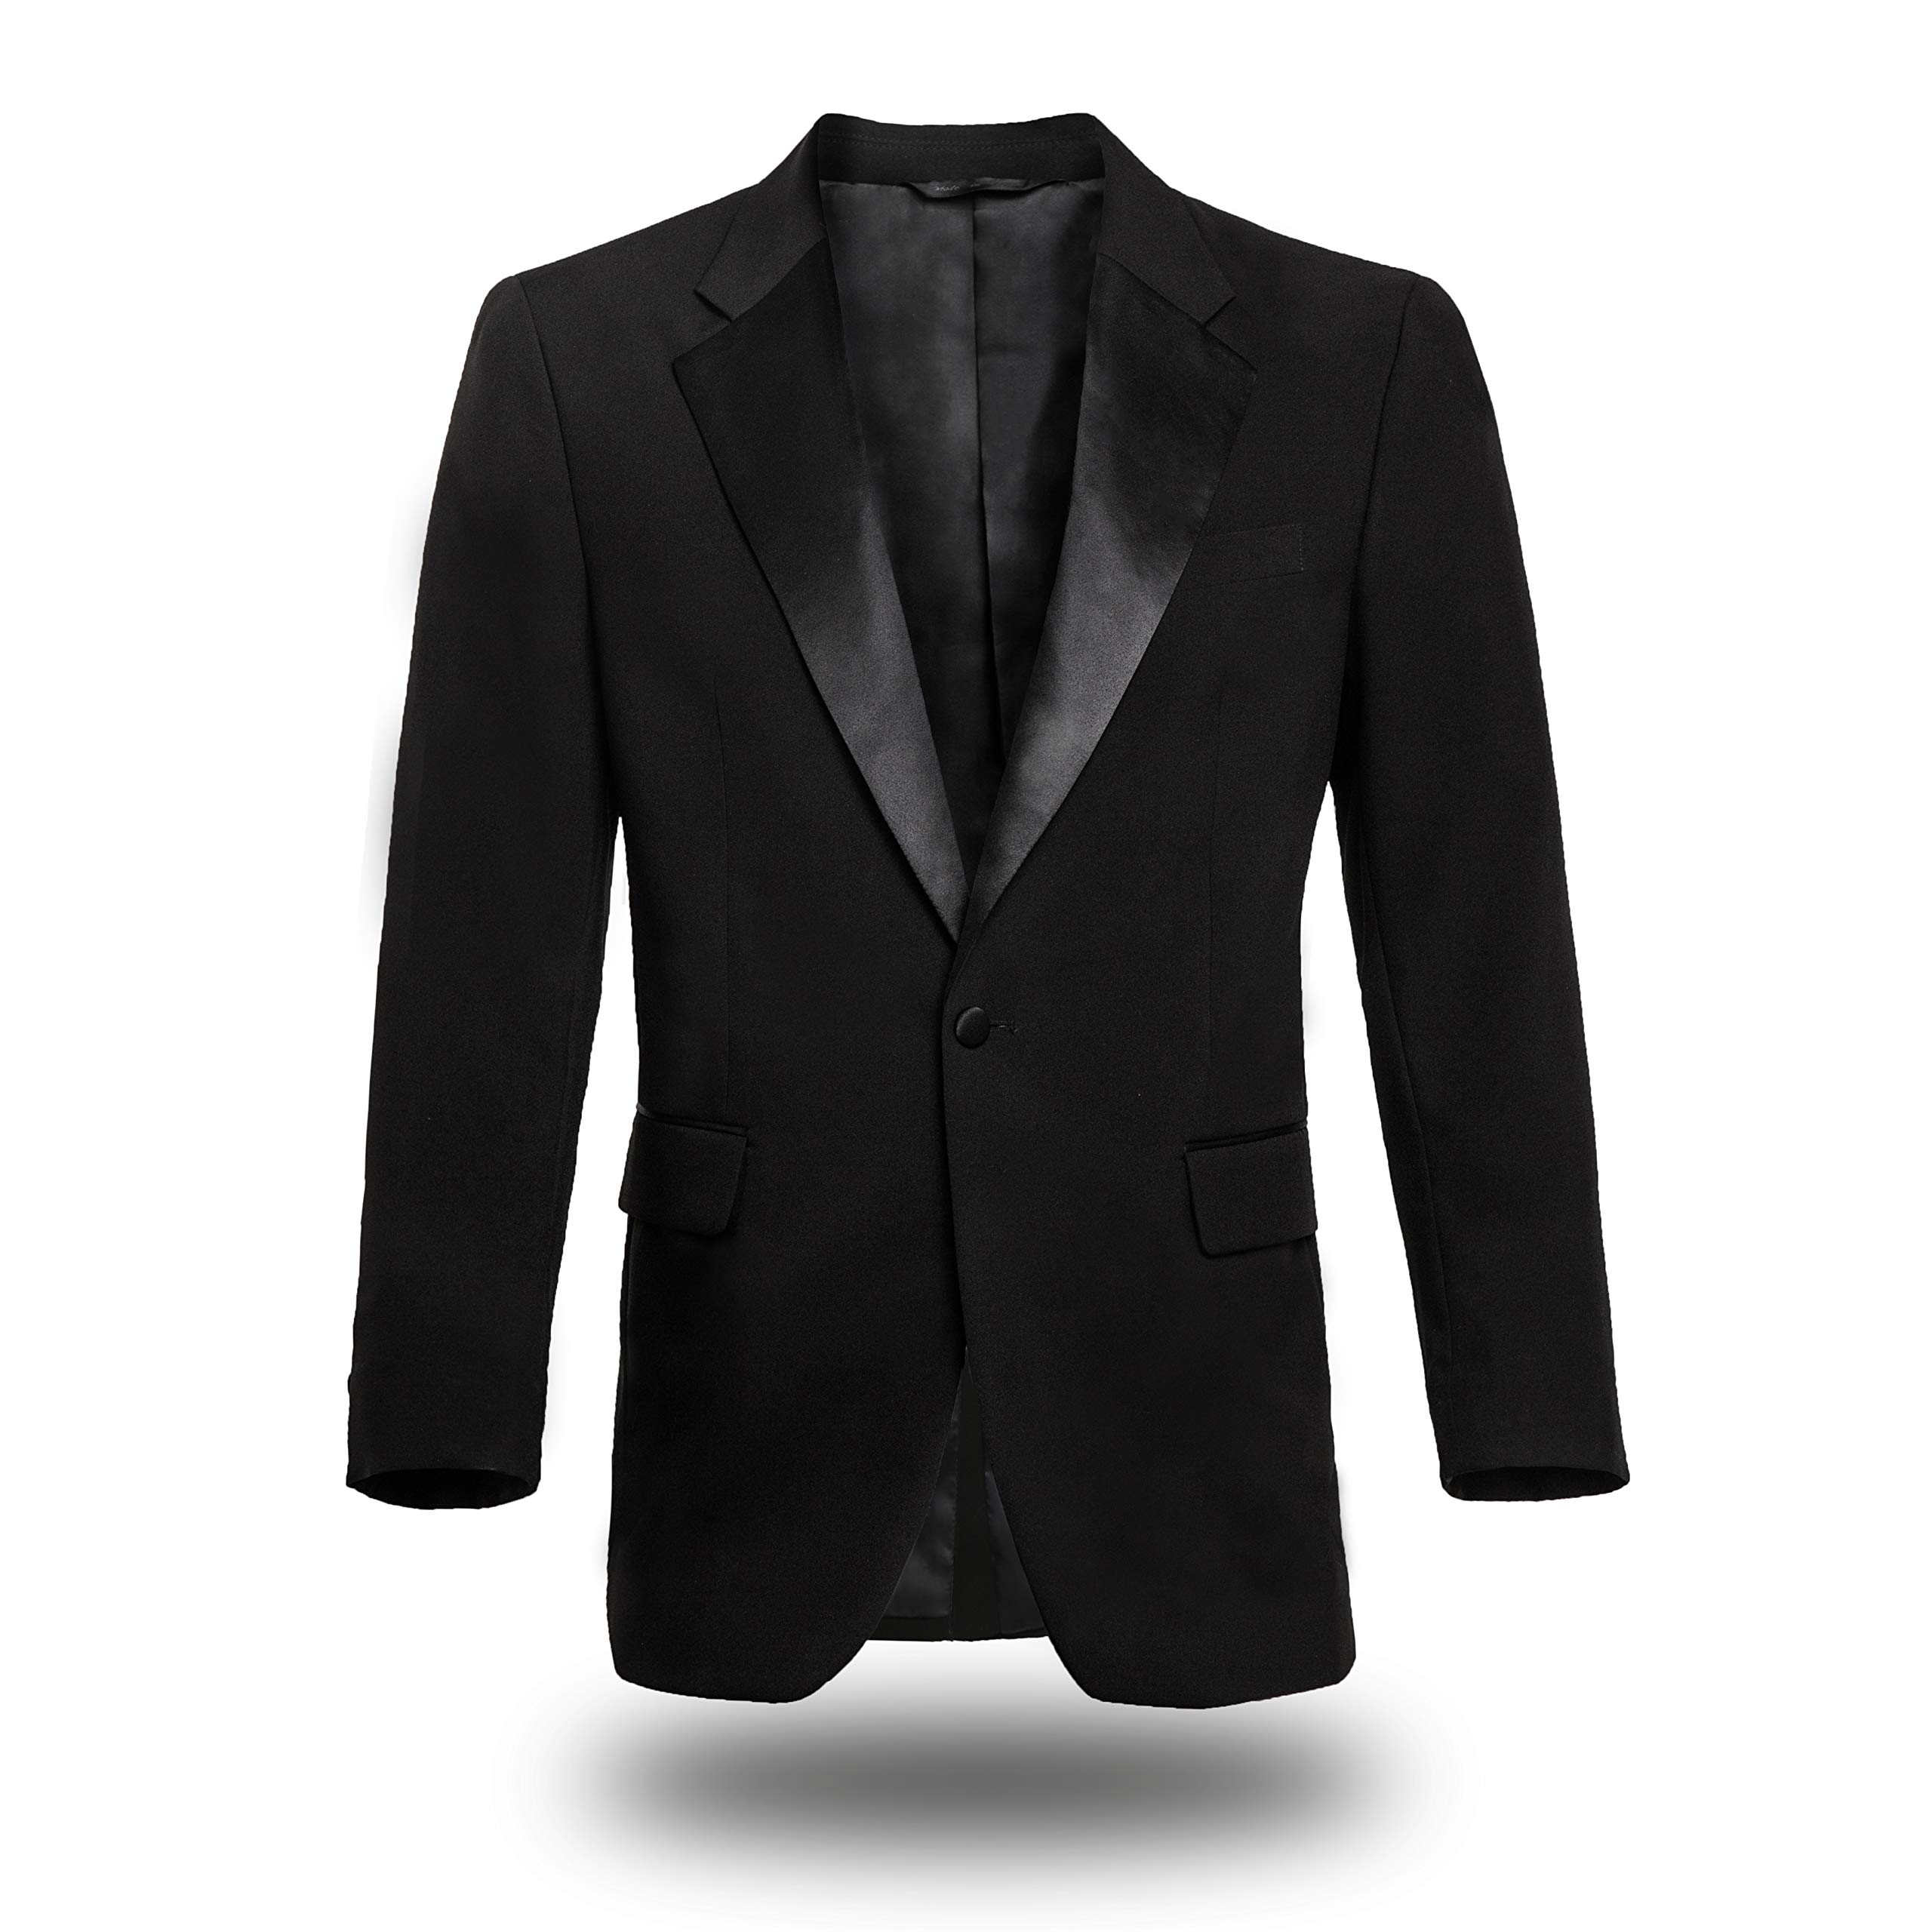 FRANKERS 100% Polyester Regular Fit Classic Satin Notch Lapel One Button Men's Black Tuxedo Jacket by FRANKERS